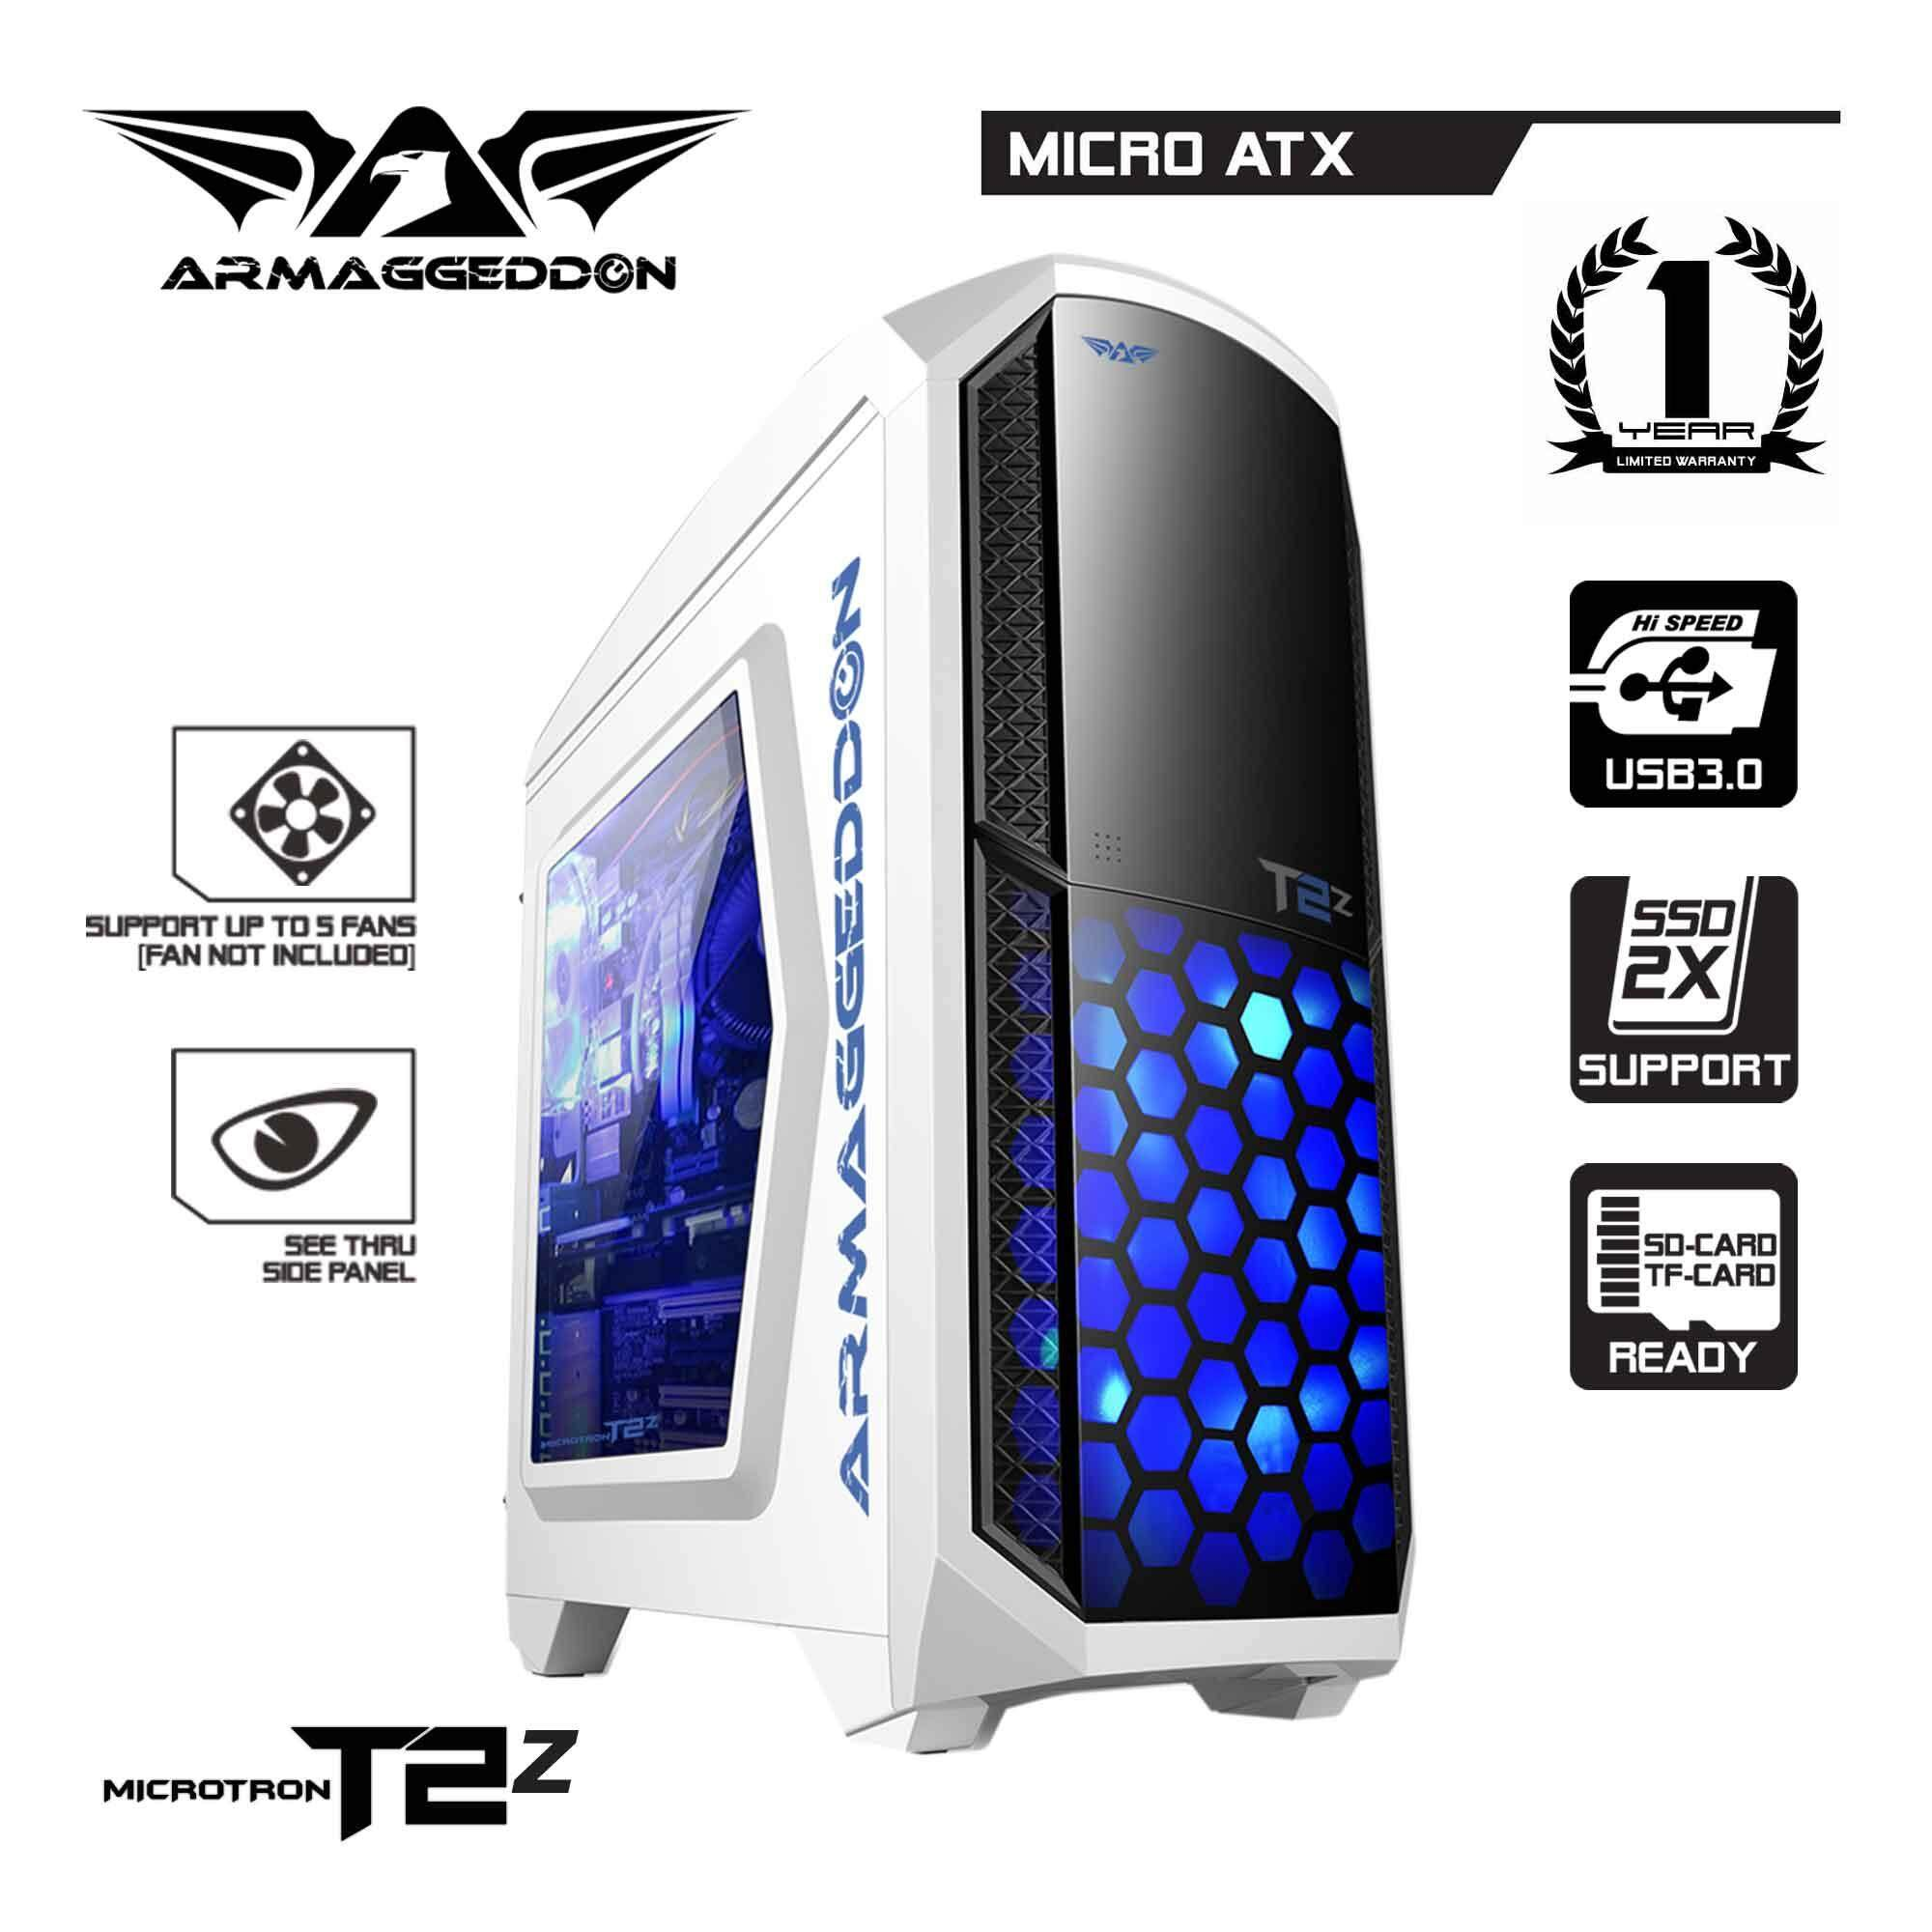 (PROMOTION) Armaggeddon Microtron T2z Gaming PC Chassis (White) Malaysia